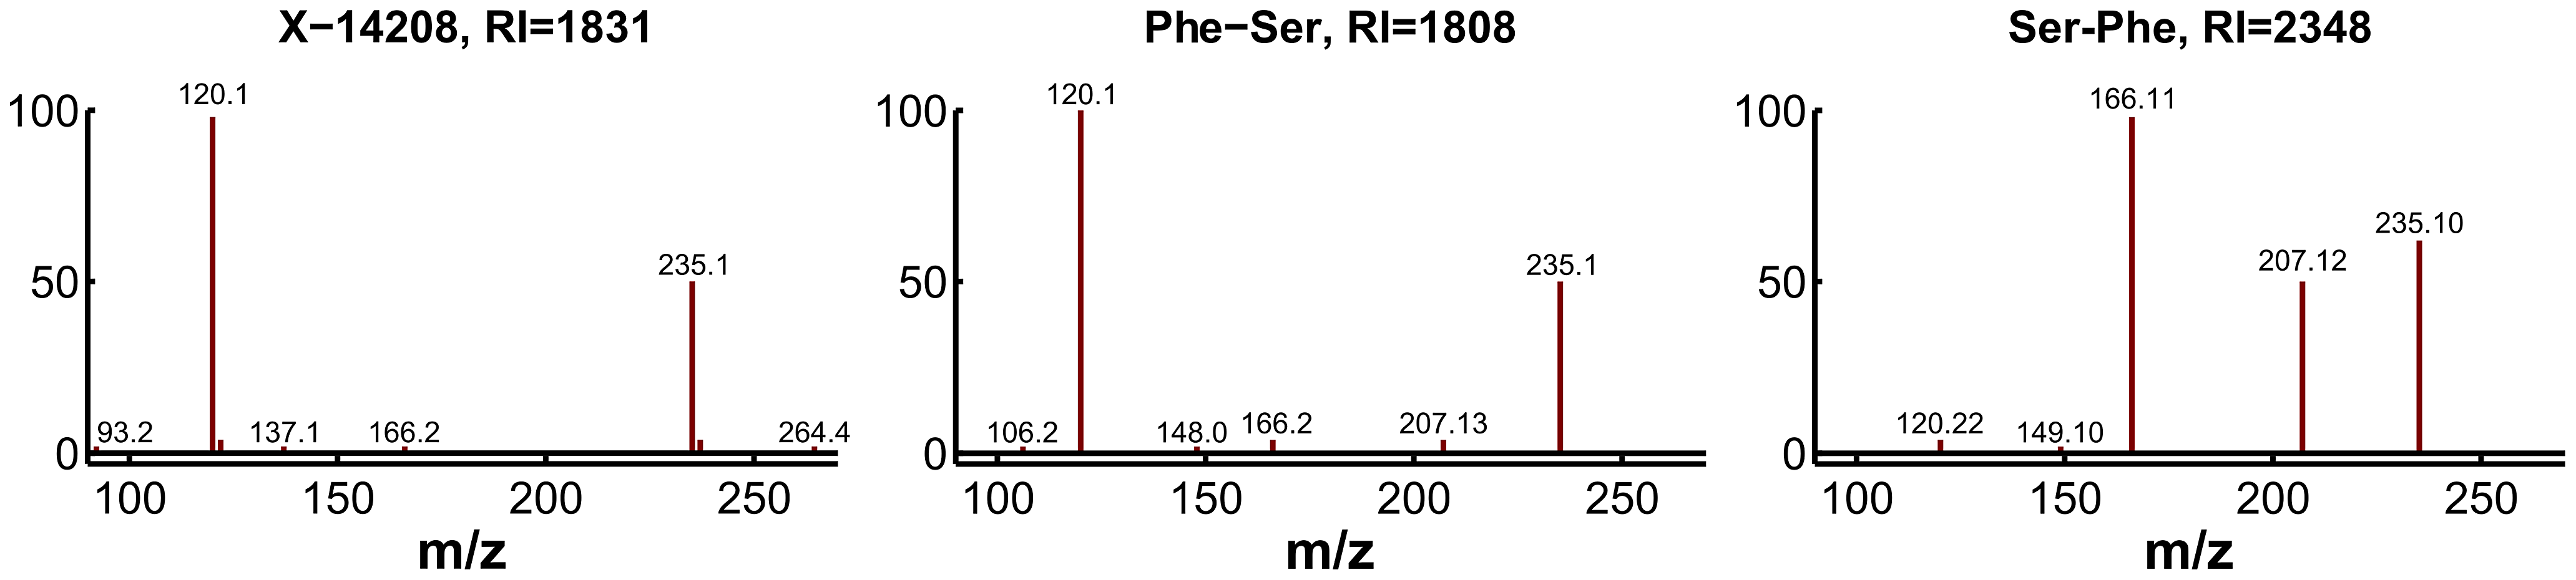 Experimental confirmation of X-14208 as phenylalanylserine.